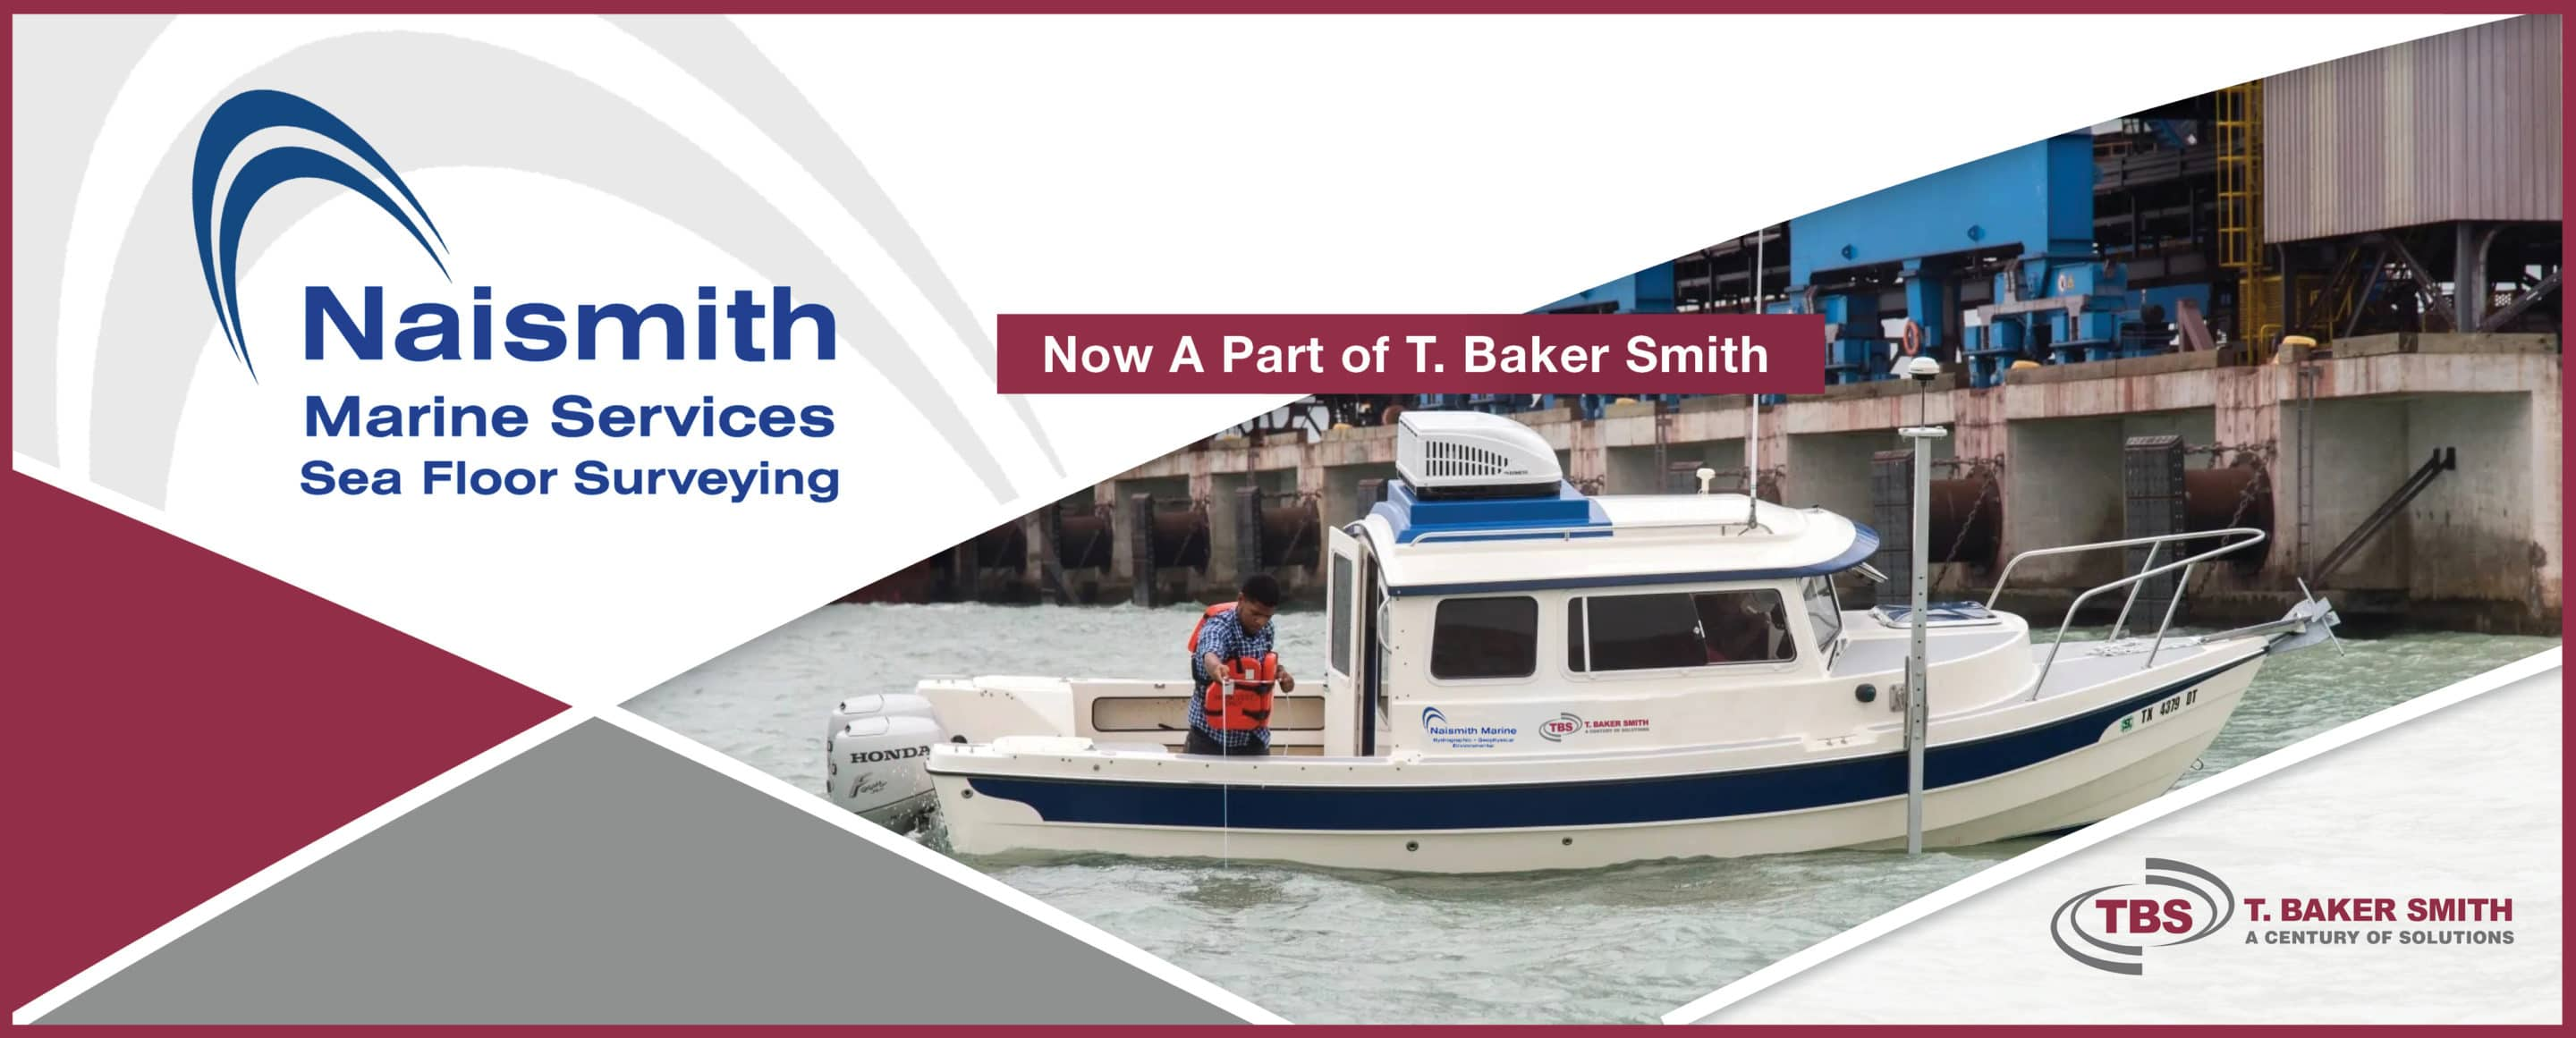 T. Baker Smith Acquires Naismith